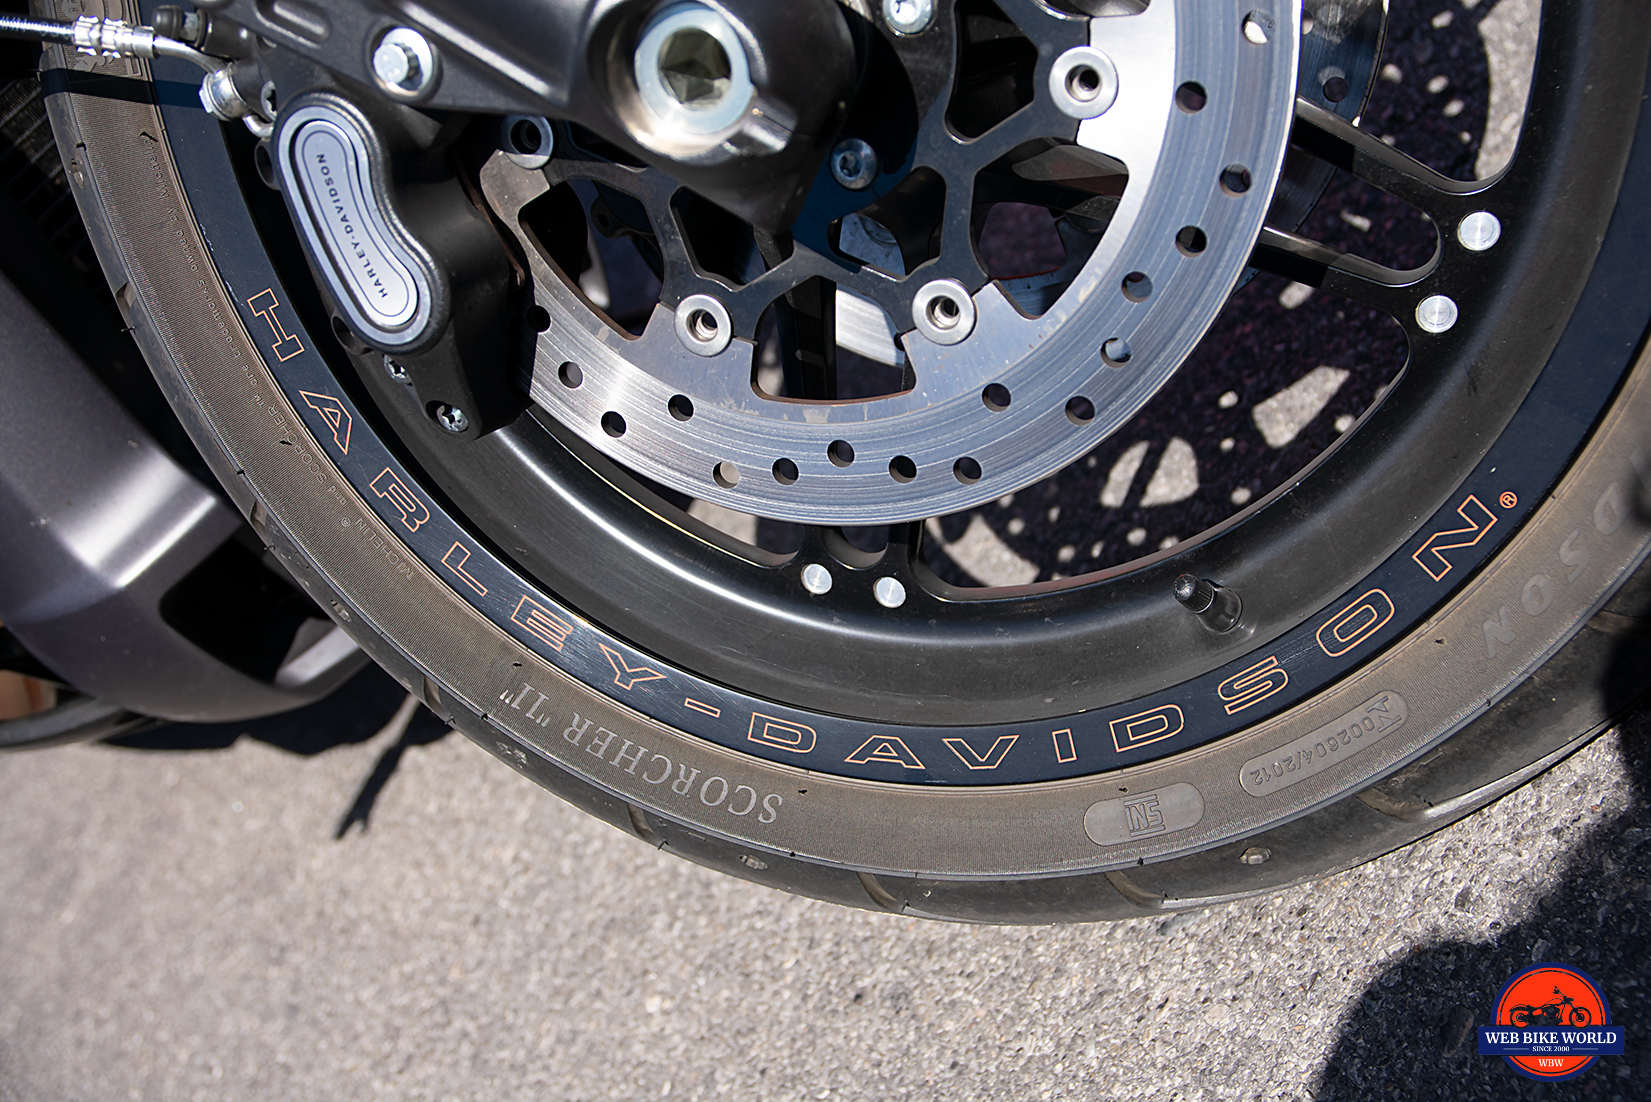 Front wheel of the 2019 Harley Davidson FXDR.